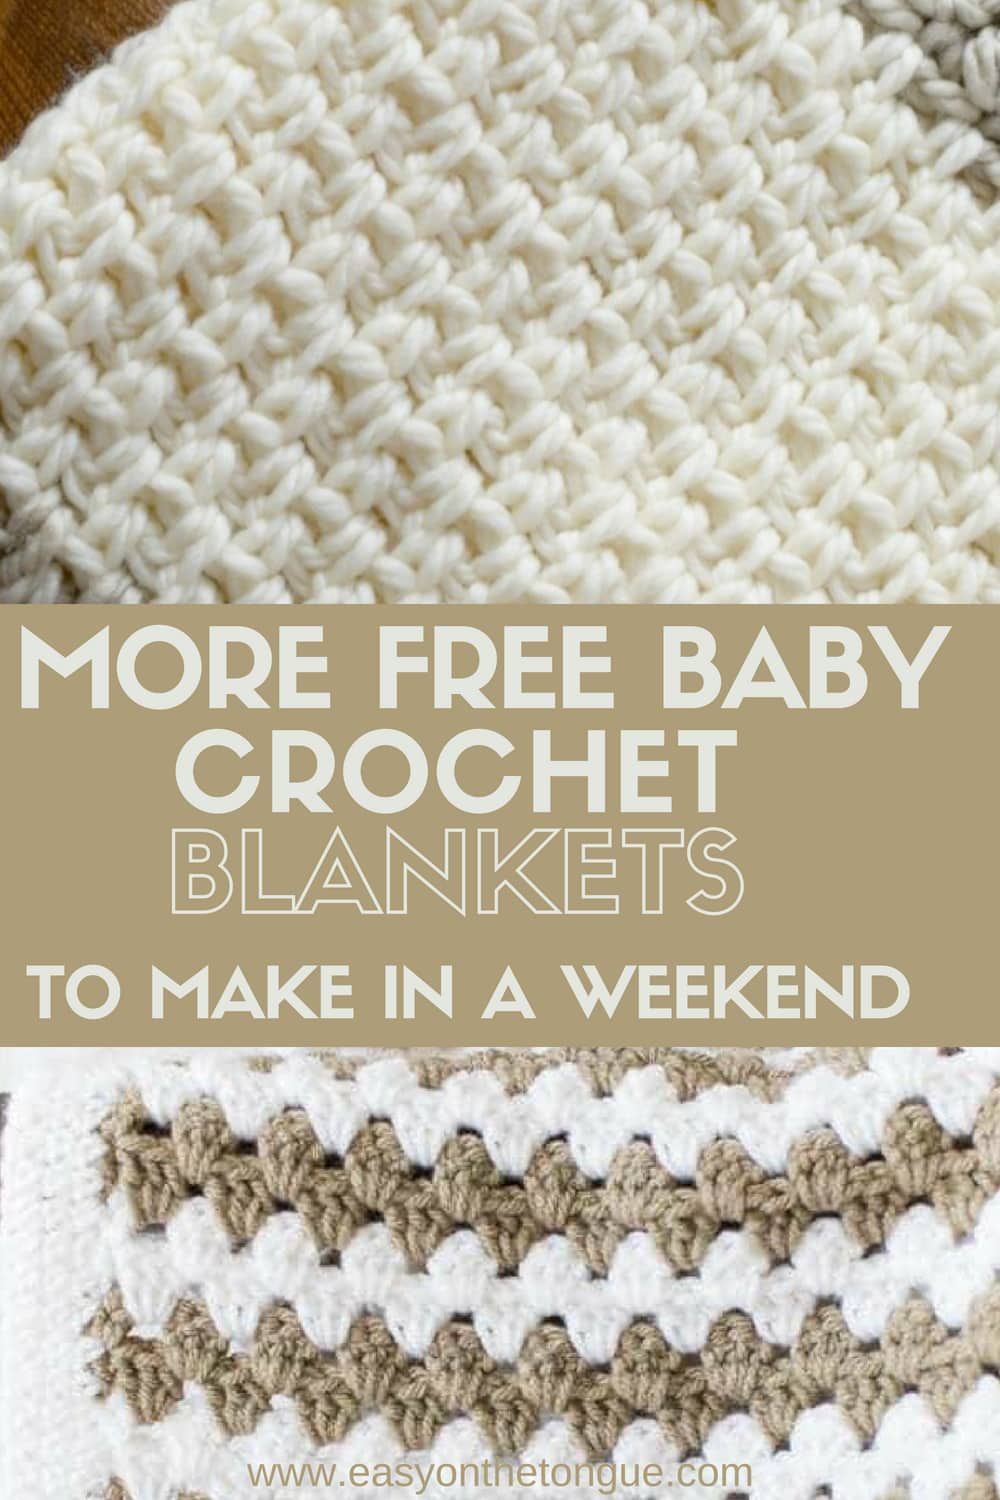 More Free Baby Crochet Blankets to make in a weekend